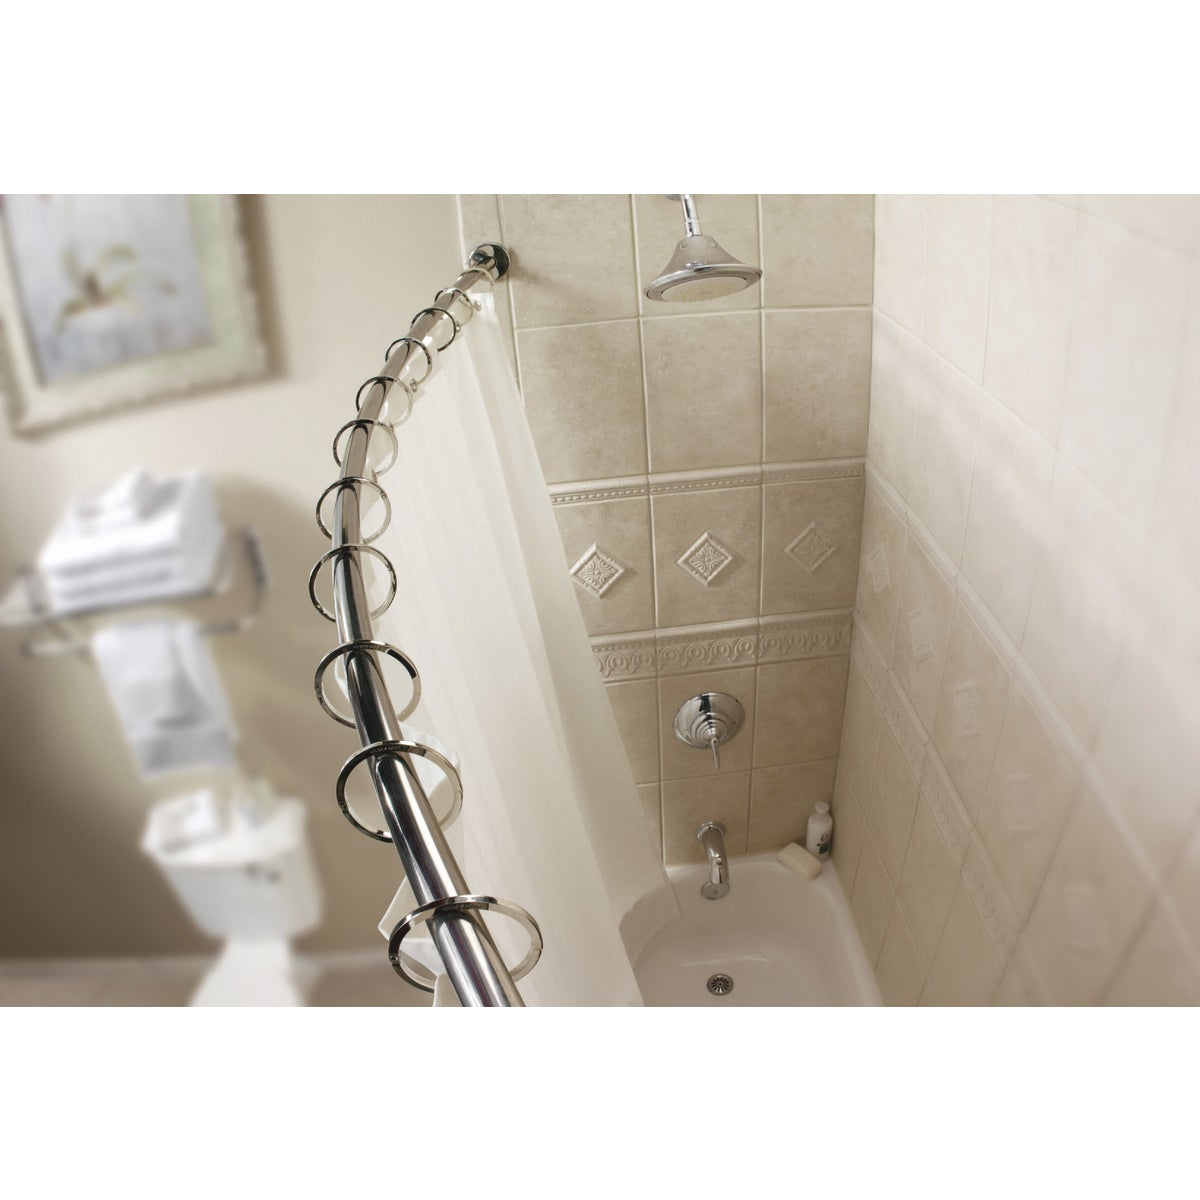 NICKEL CURVE SHOWER ROD - DN2160BN by C S I Donner